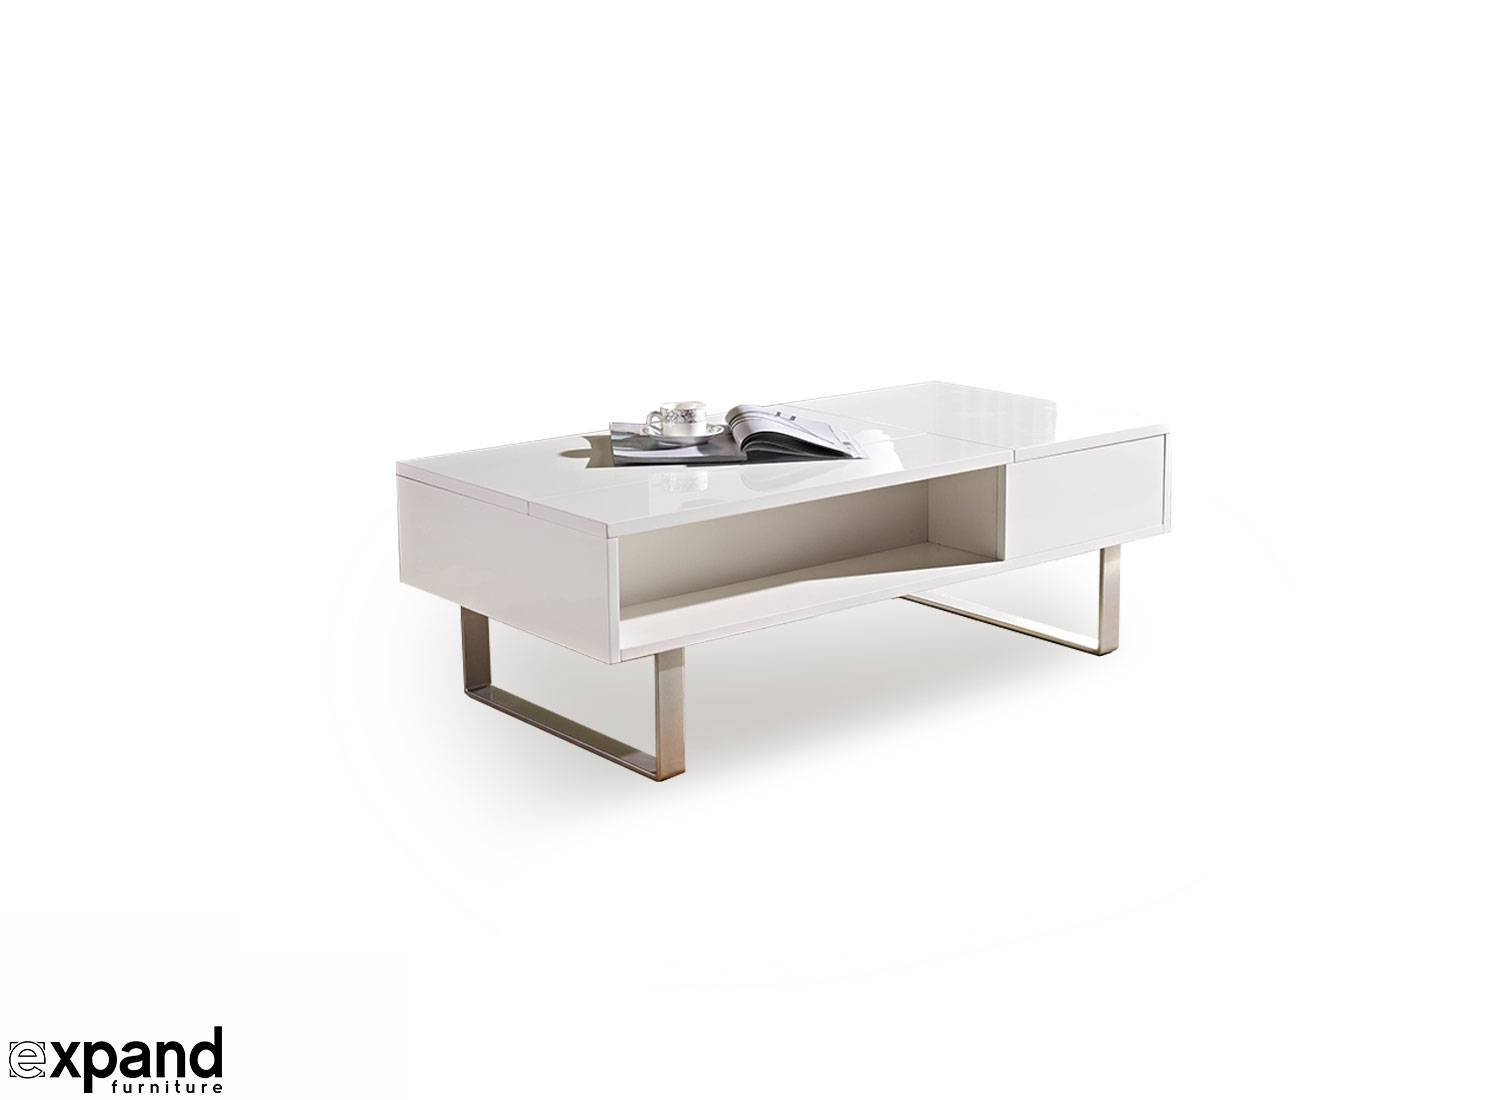 Occam Coffee Table With Lift Top | Expand Furniture throughout White and Chrome Coffee Tables (Image 22 of 30)